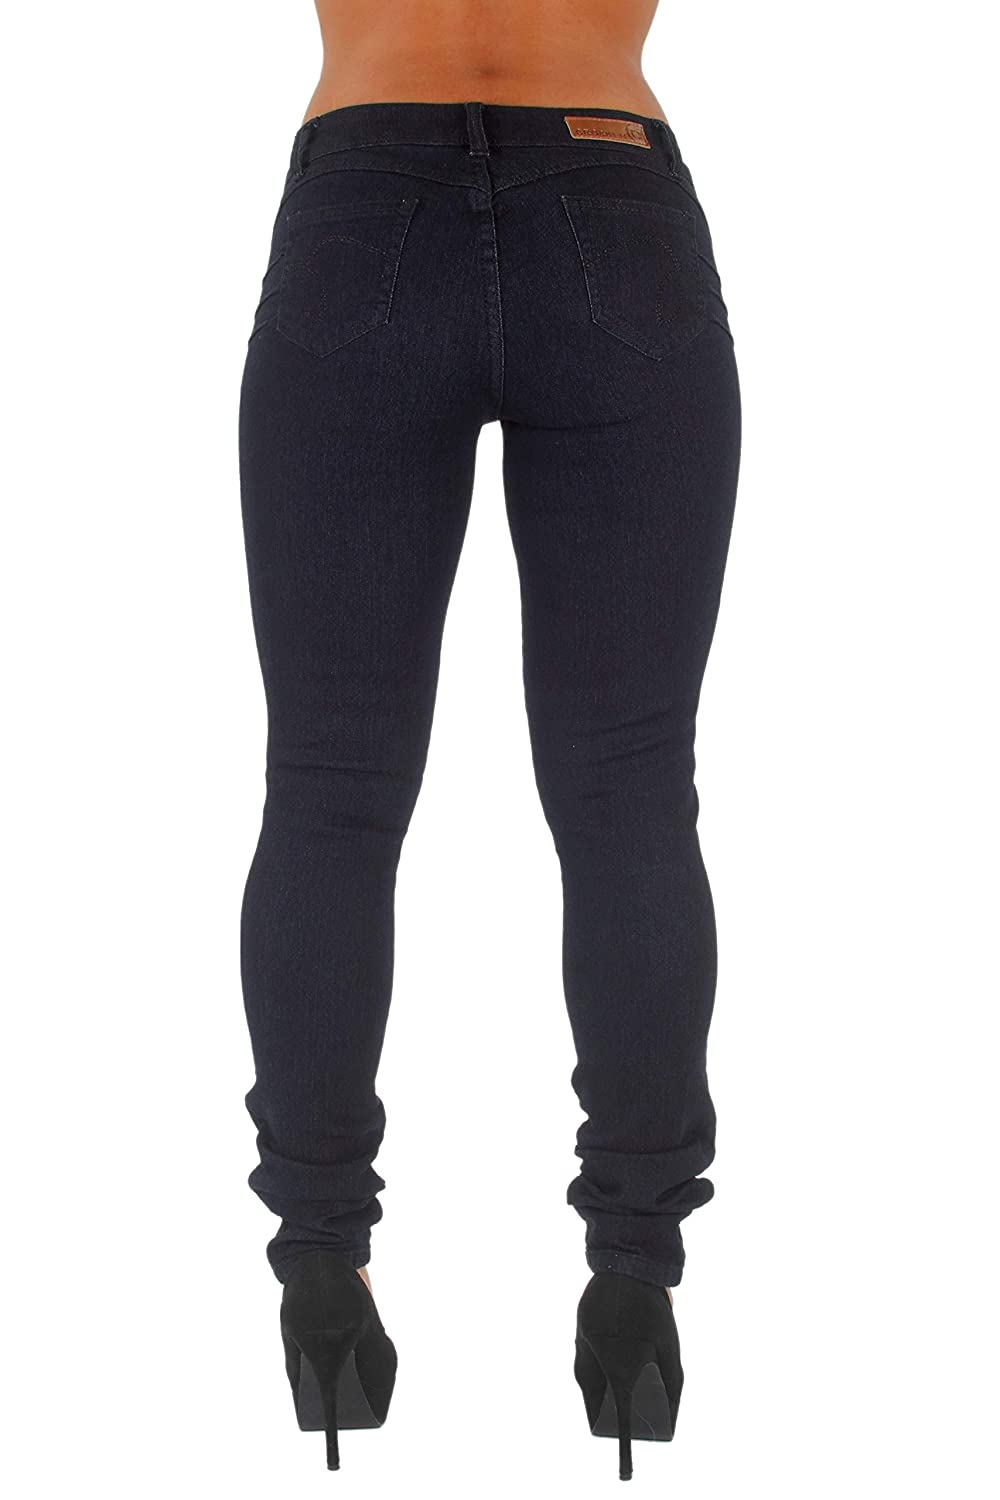 4db833cf6dff Junior/Plus Size Colombian Design, Butt Lift, Levanta Cola, Skinny Jeans  Black at Amazon Women's Jeans store